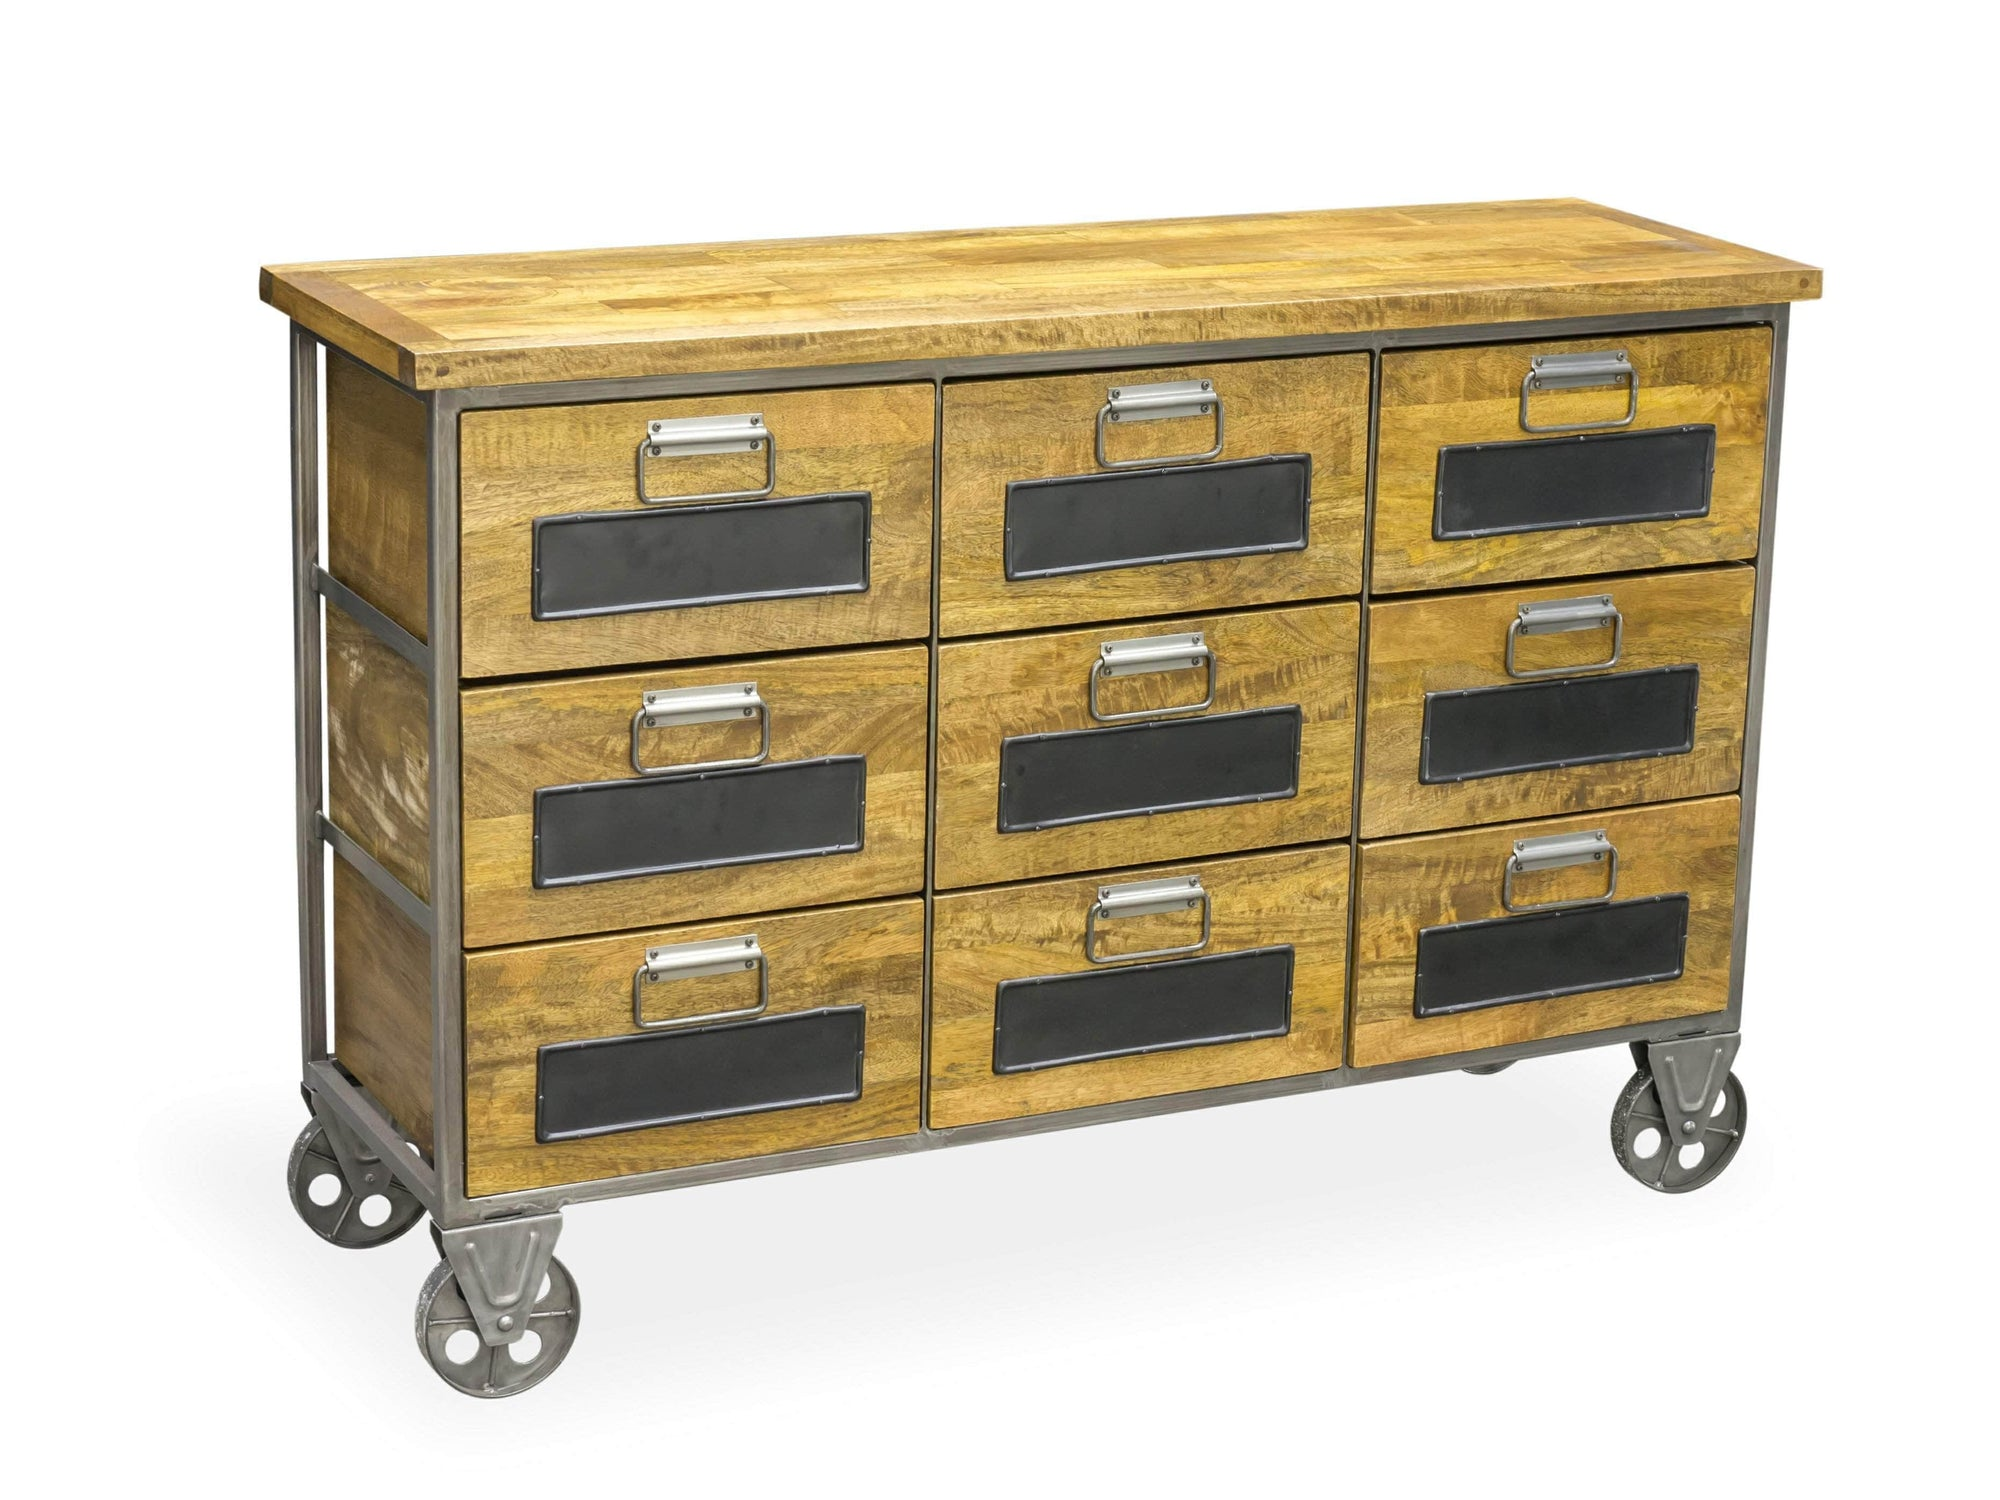 London Industrial Chest of Drawers